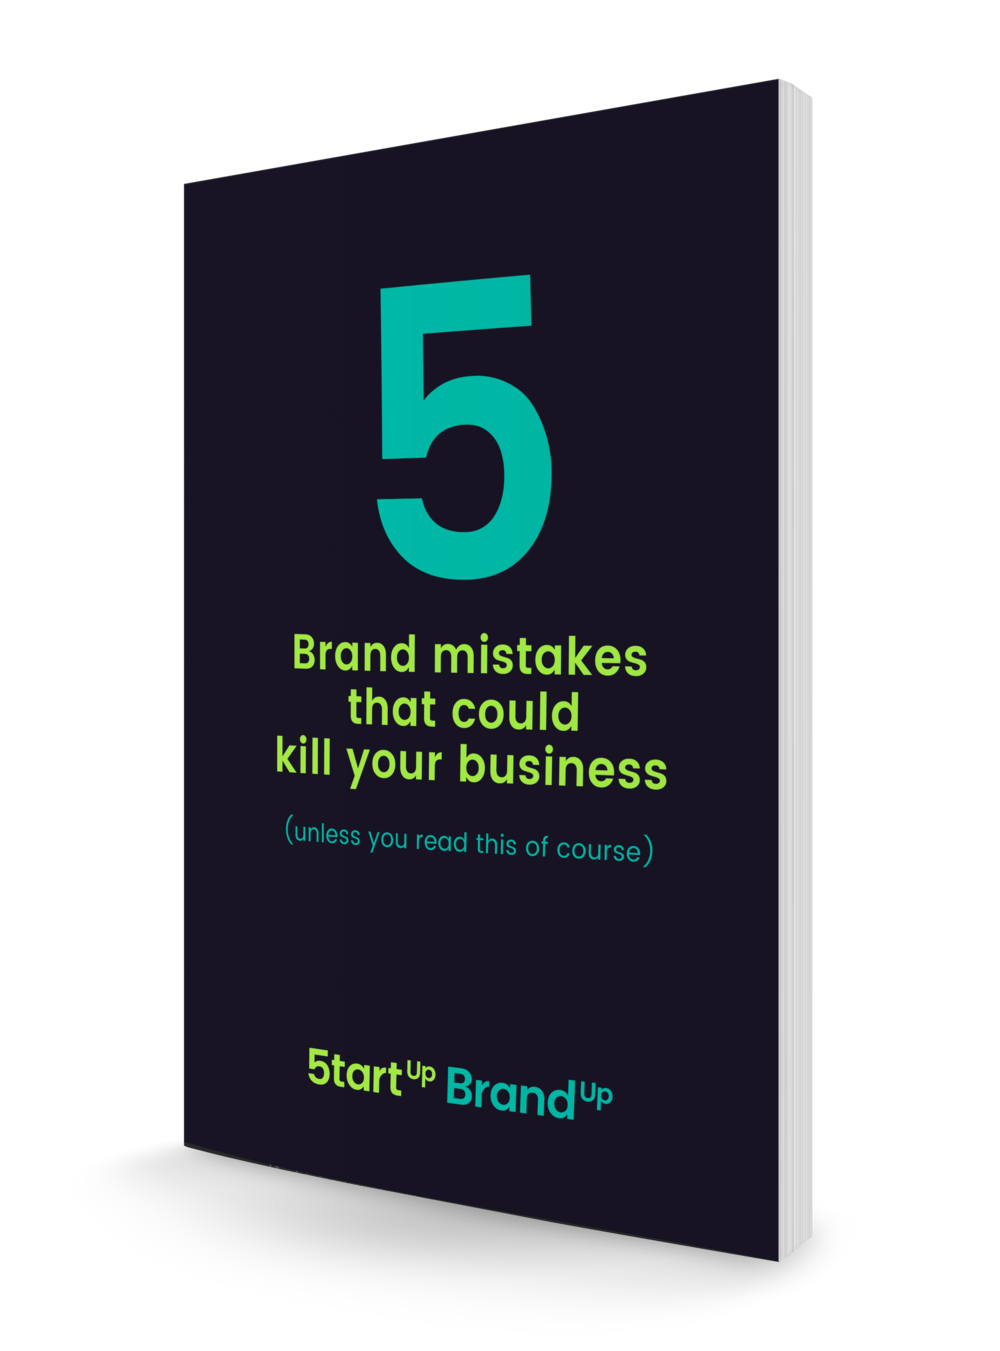 Brand mistakes that could kill your business, Start Up Brand Up, online programme, avoid these mistakes and build a successful brand, business owners, entrepreneurs, brand, branding, passion, free ebook, love your brand,